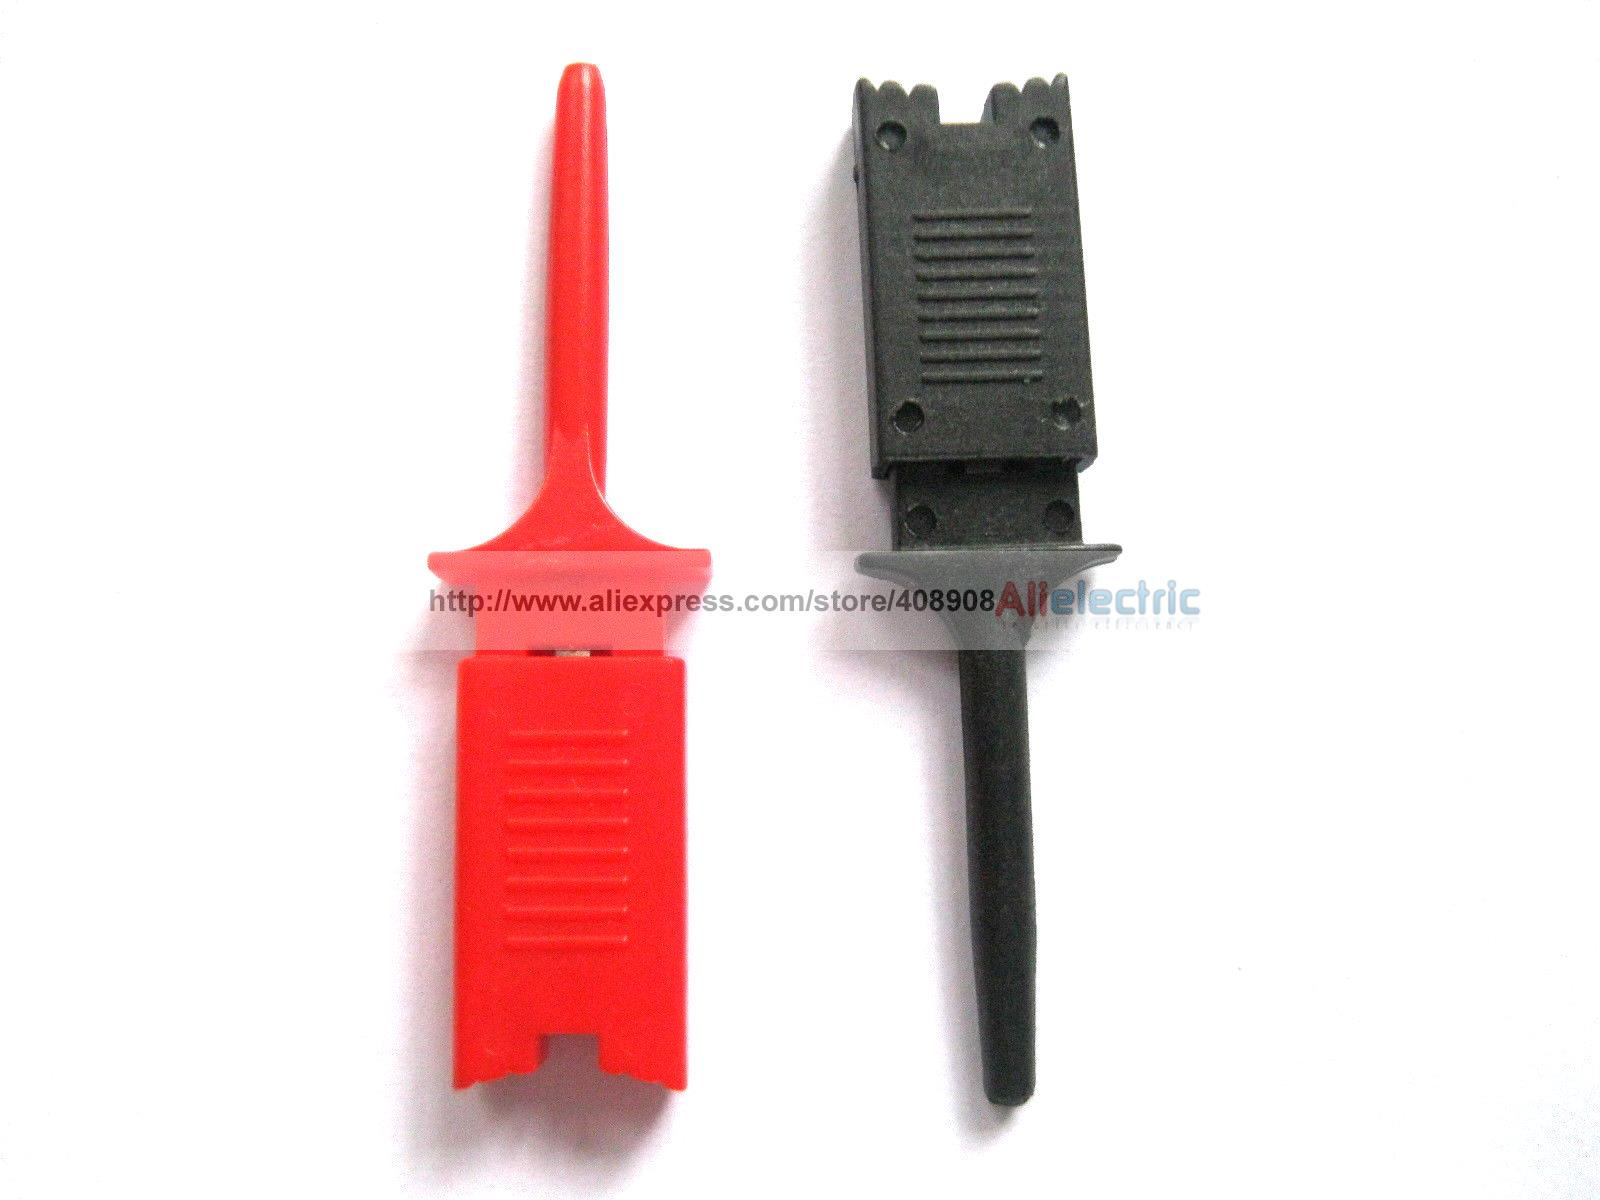 100 Pcs Flat Small Test Clip for Multimeter Red Black sop8 abs test clip black